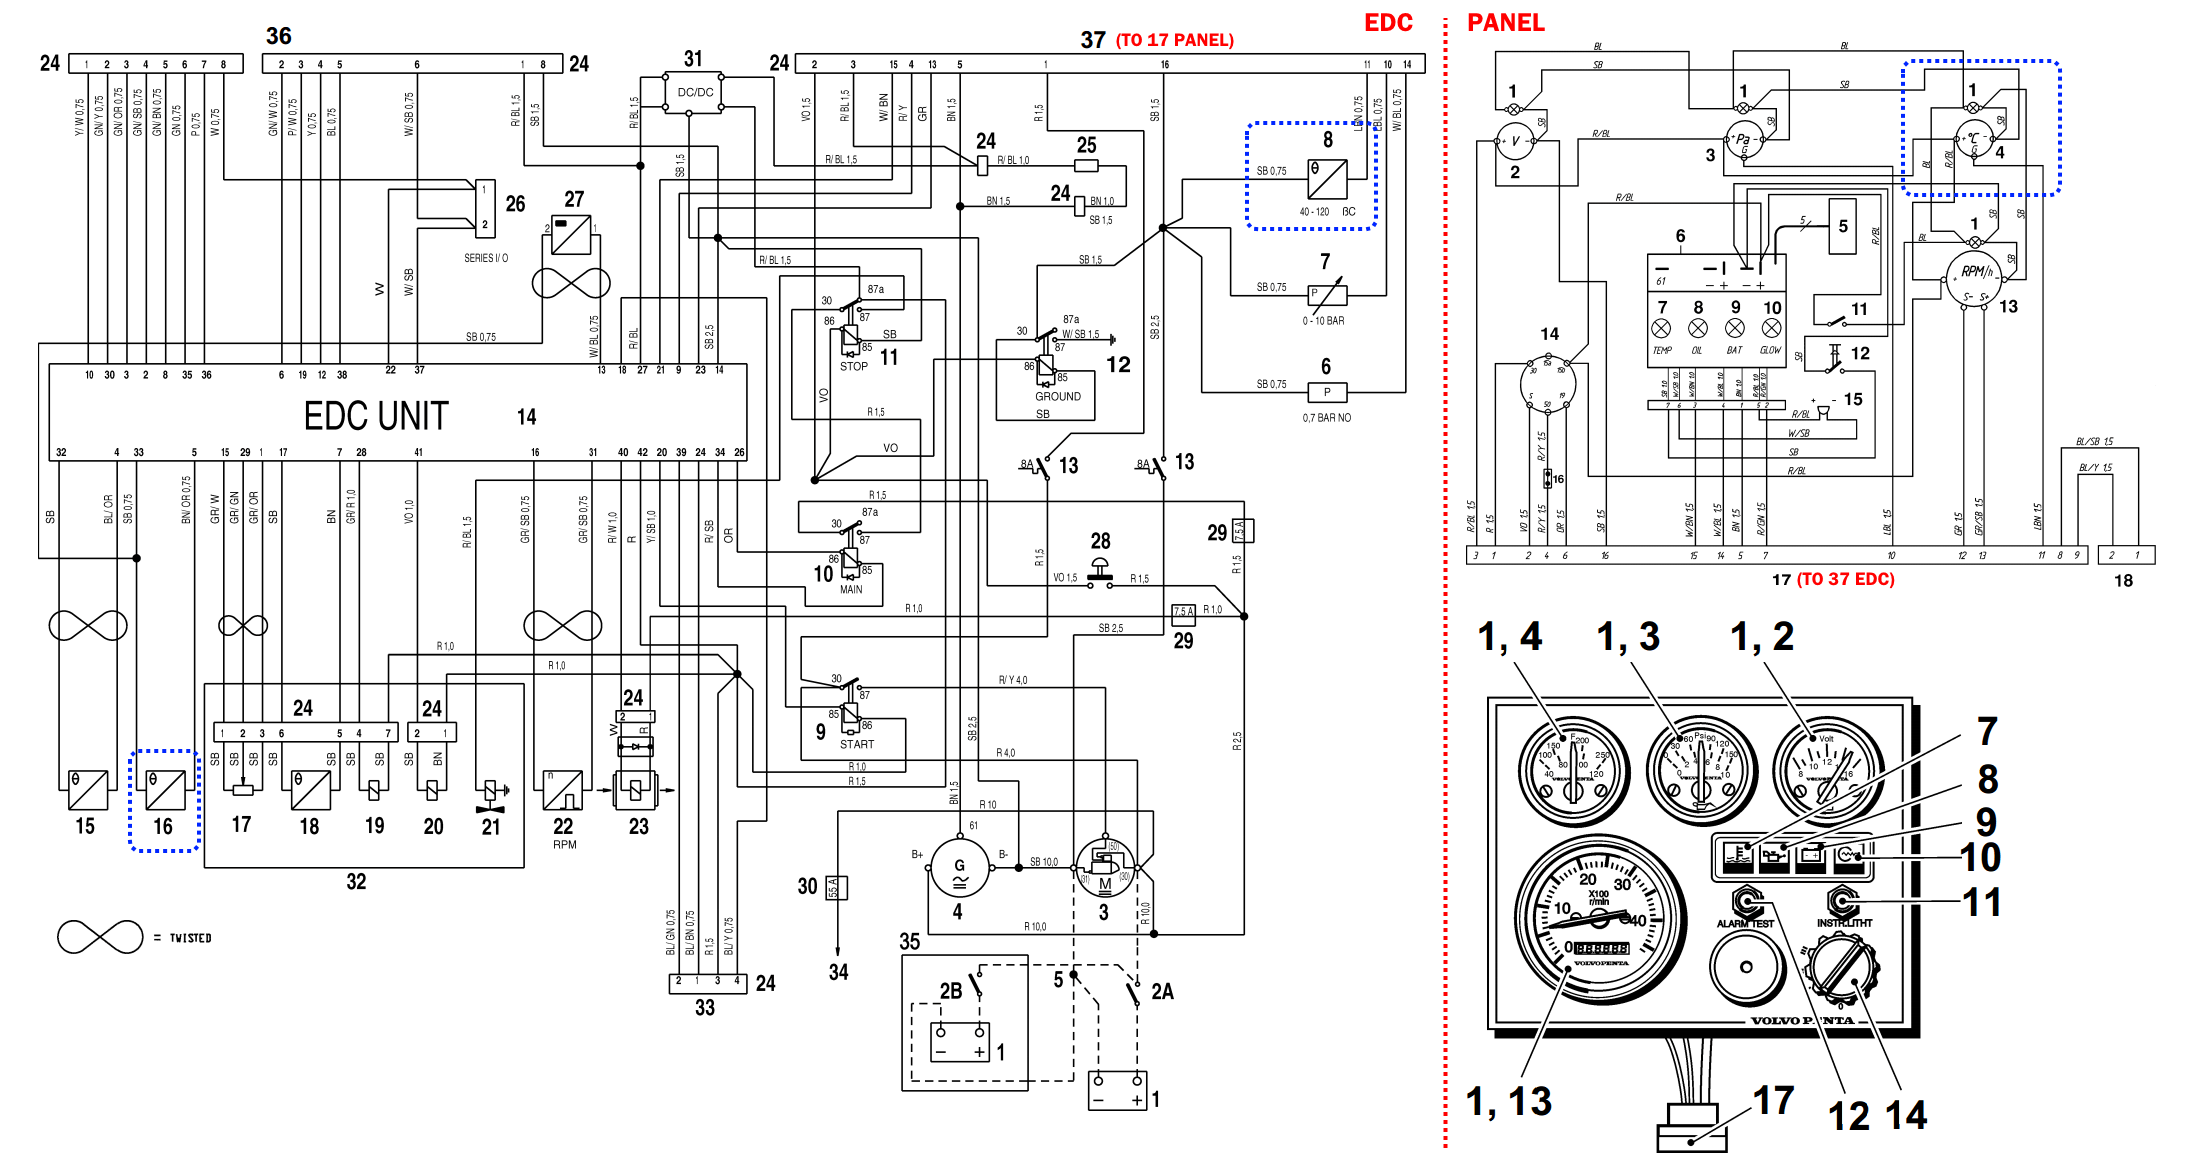 Wiring Diagram Emprendedor On 95 Gmc Glow Plug Relay Controller 78 Trans Am Library